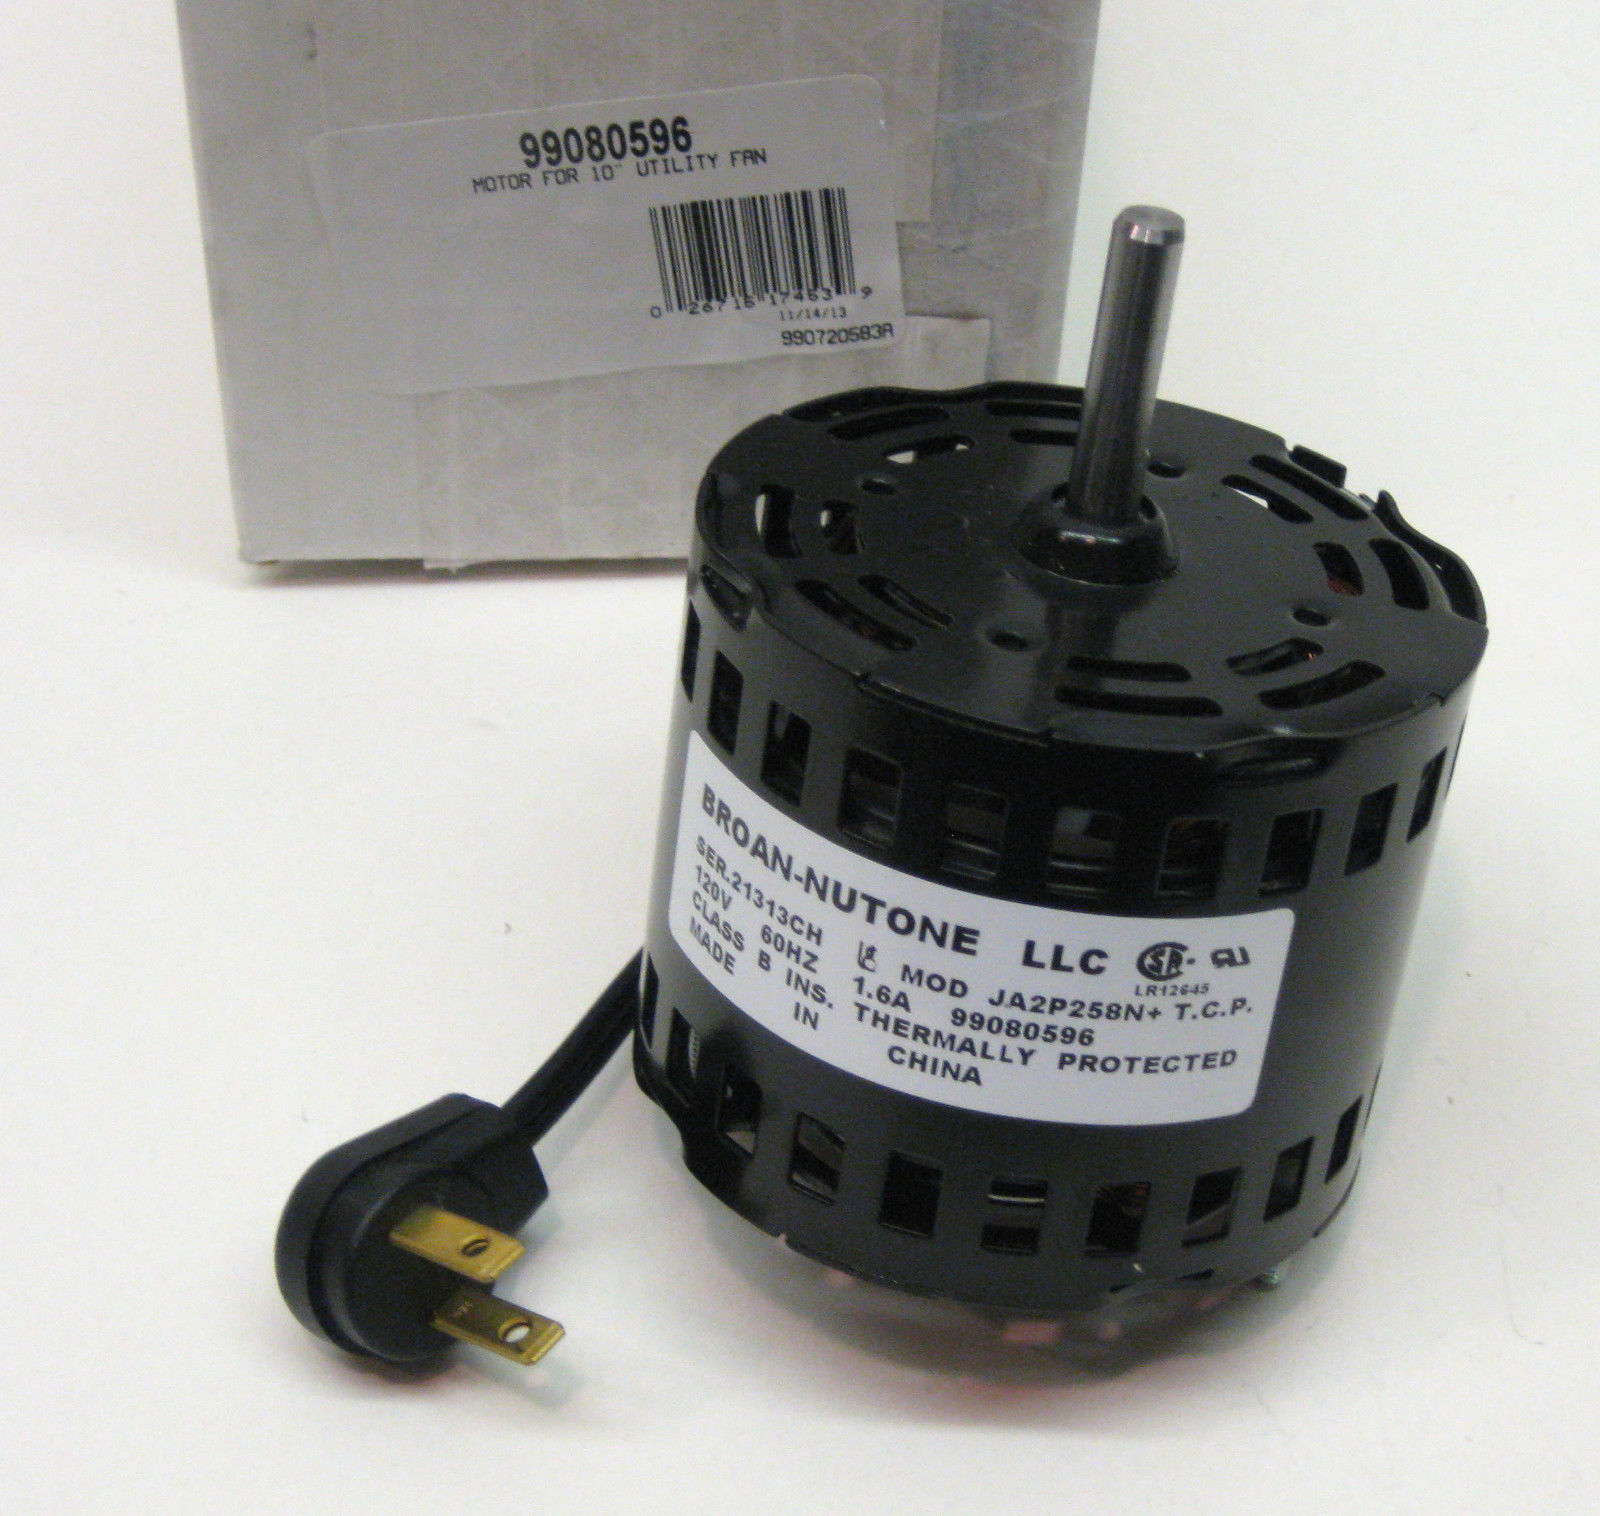 Air Vent Fan Motors : Broan nutone vent fan motor ja p n s  ebay